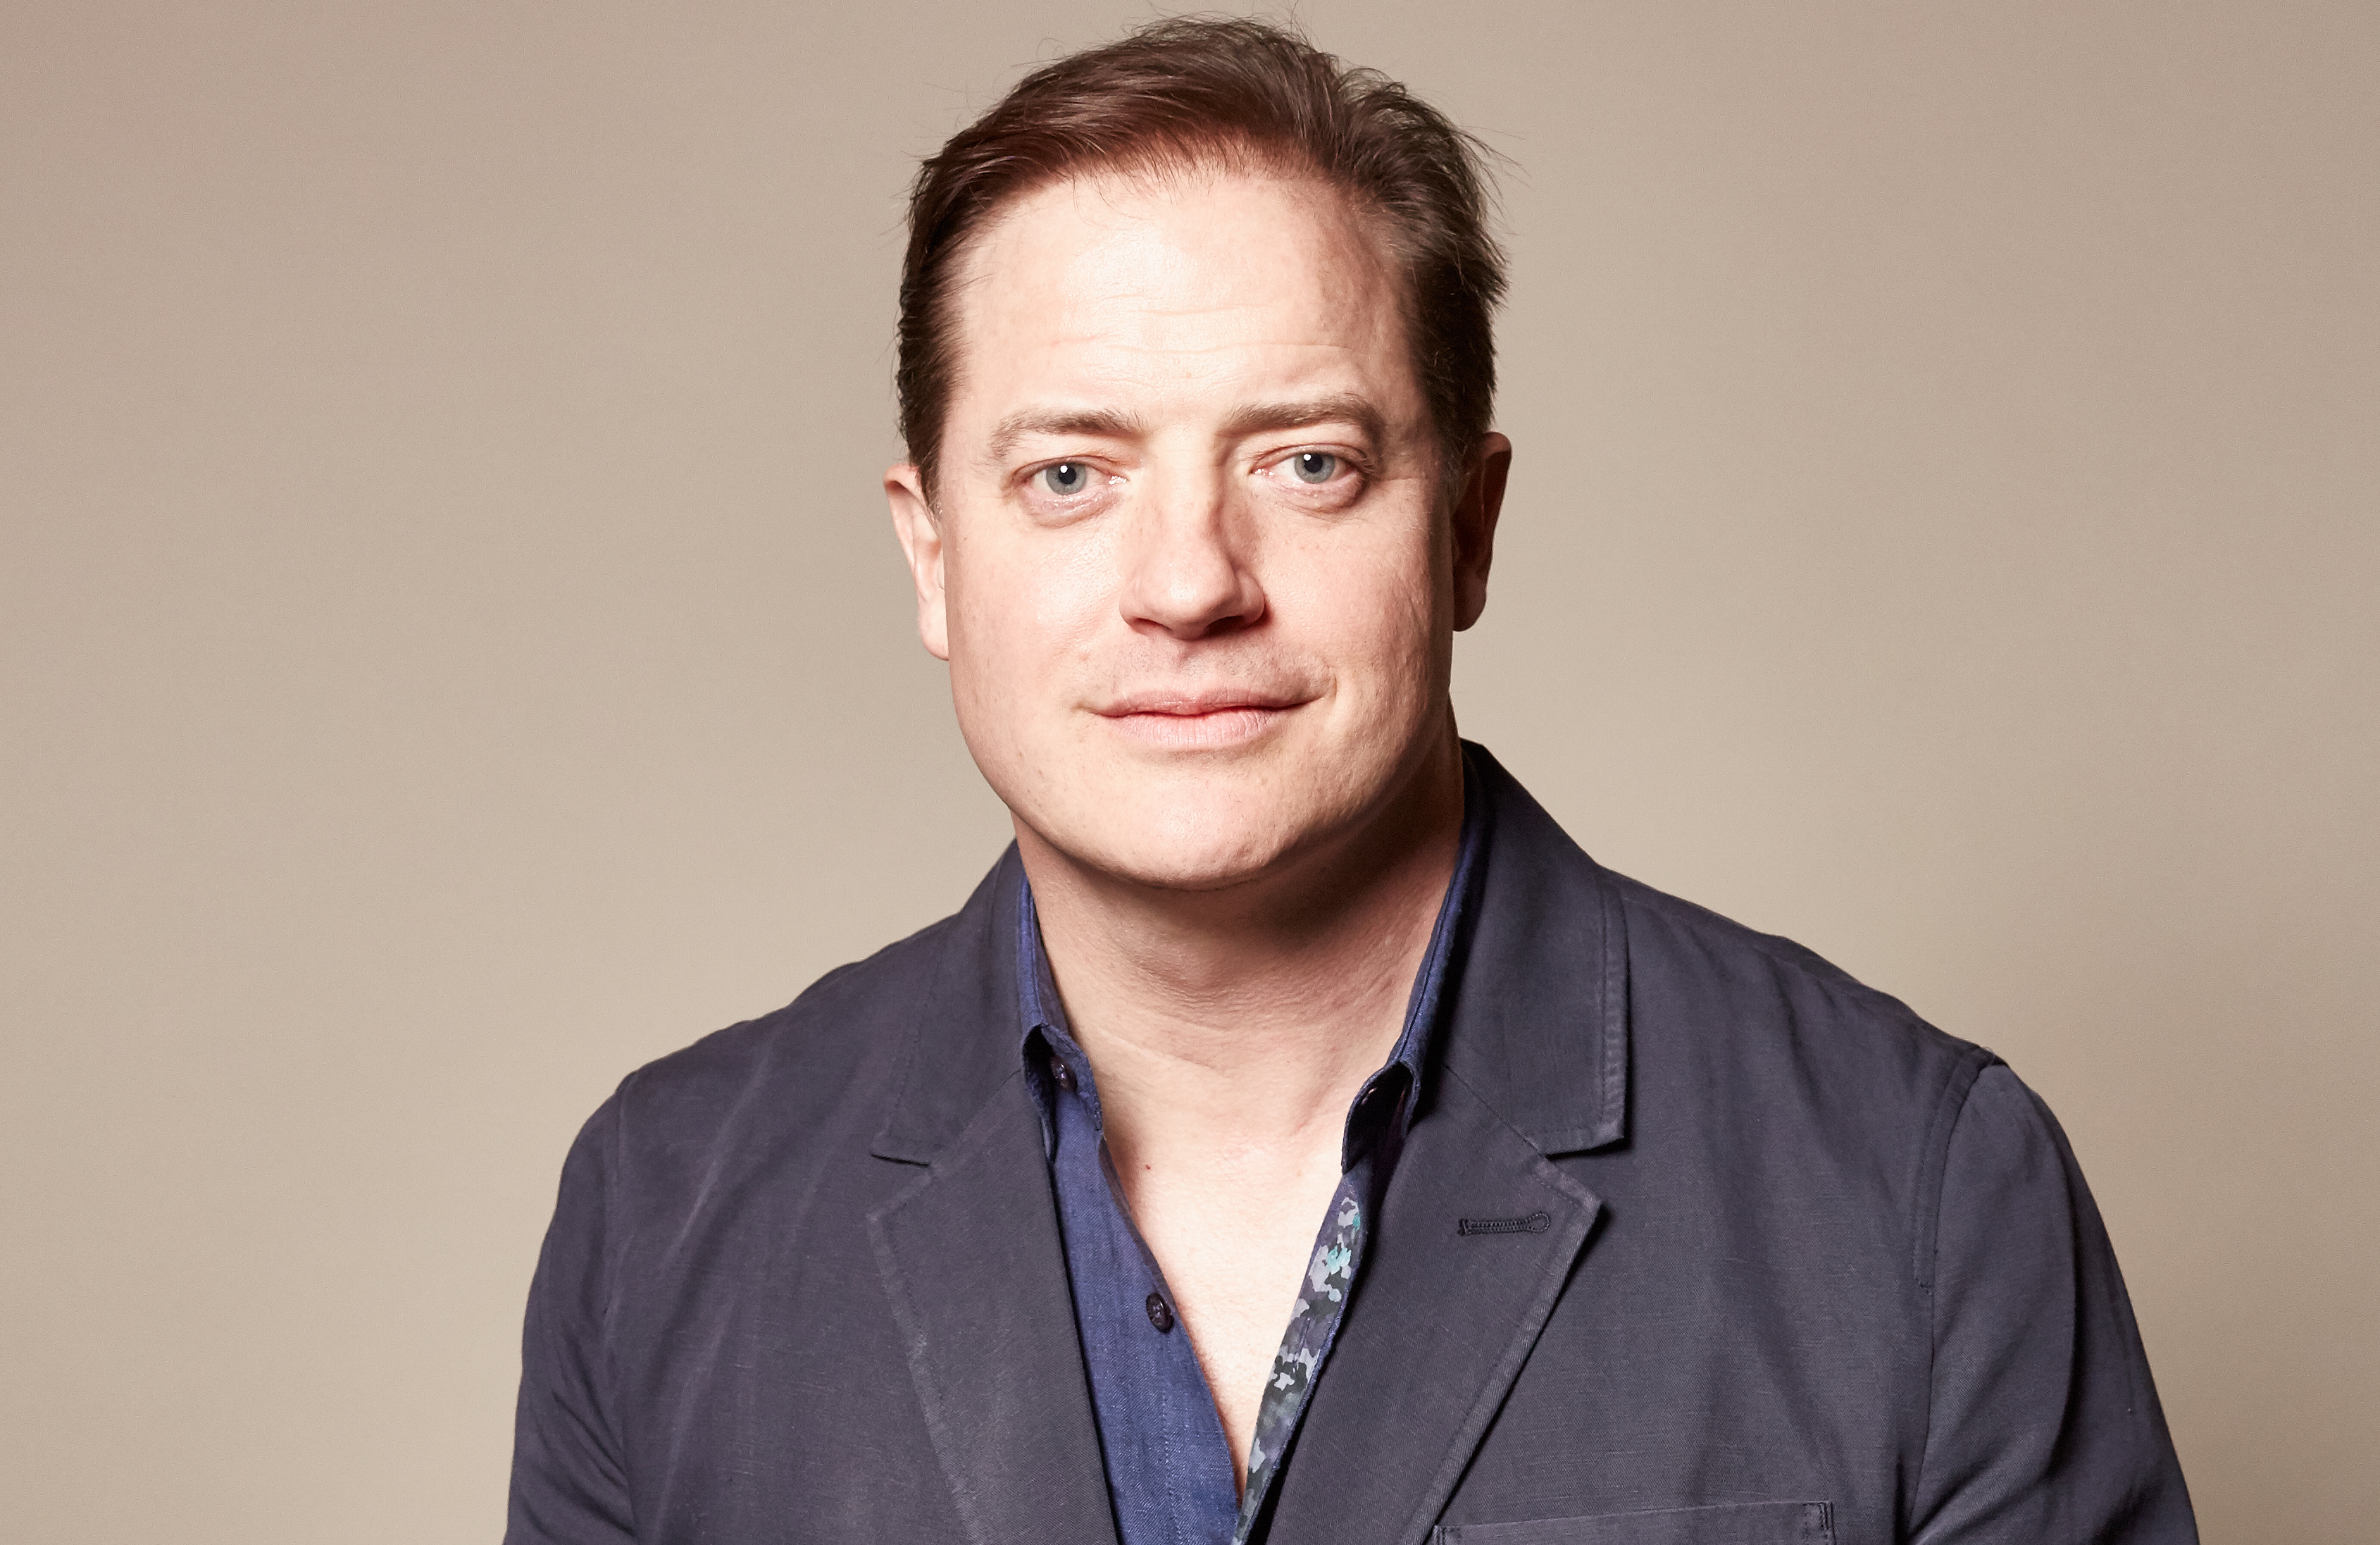 Why Brendan Fraser Left Hollywood: Everything You Need to Know